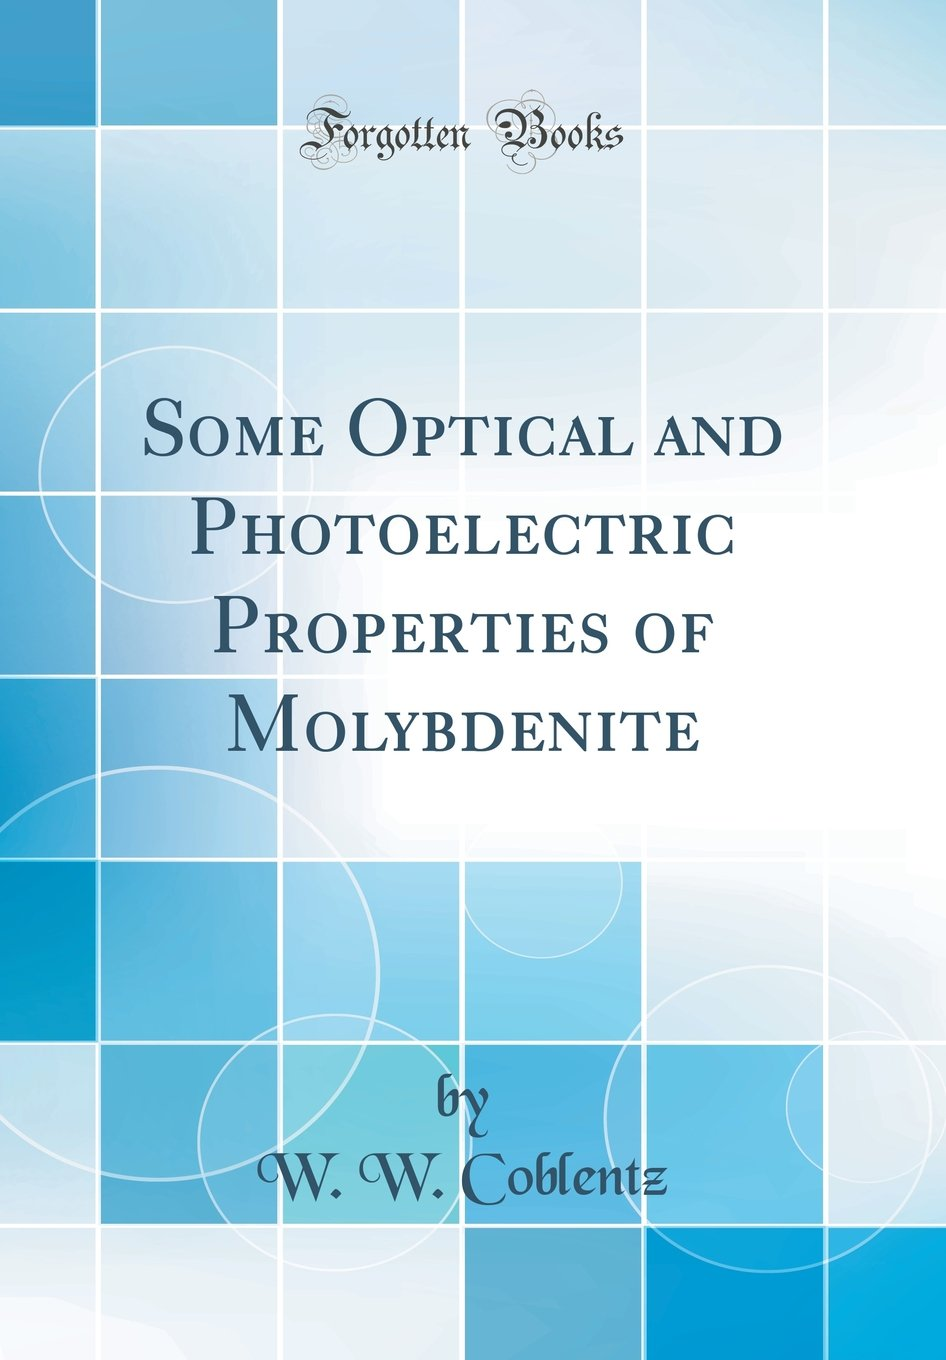 Download Some Optical and Photoelectric Properties of Molybdenite (Classic Reprint) pdf epub